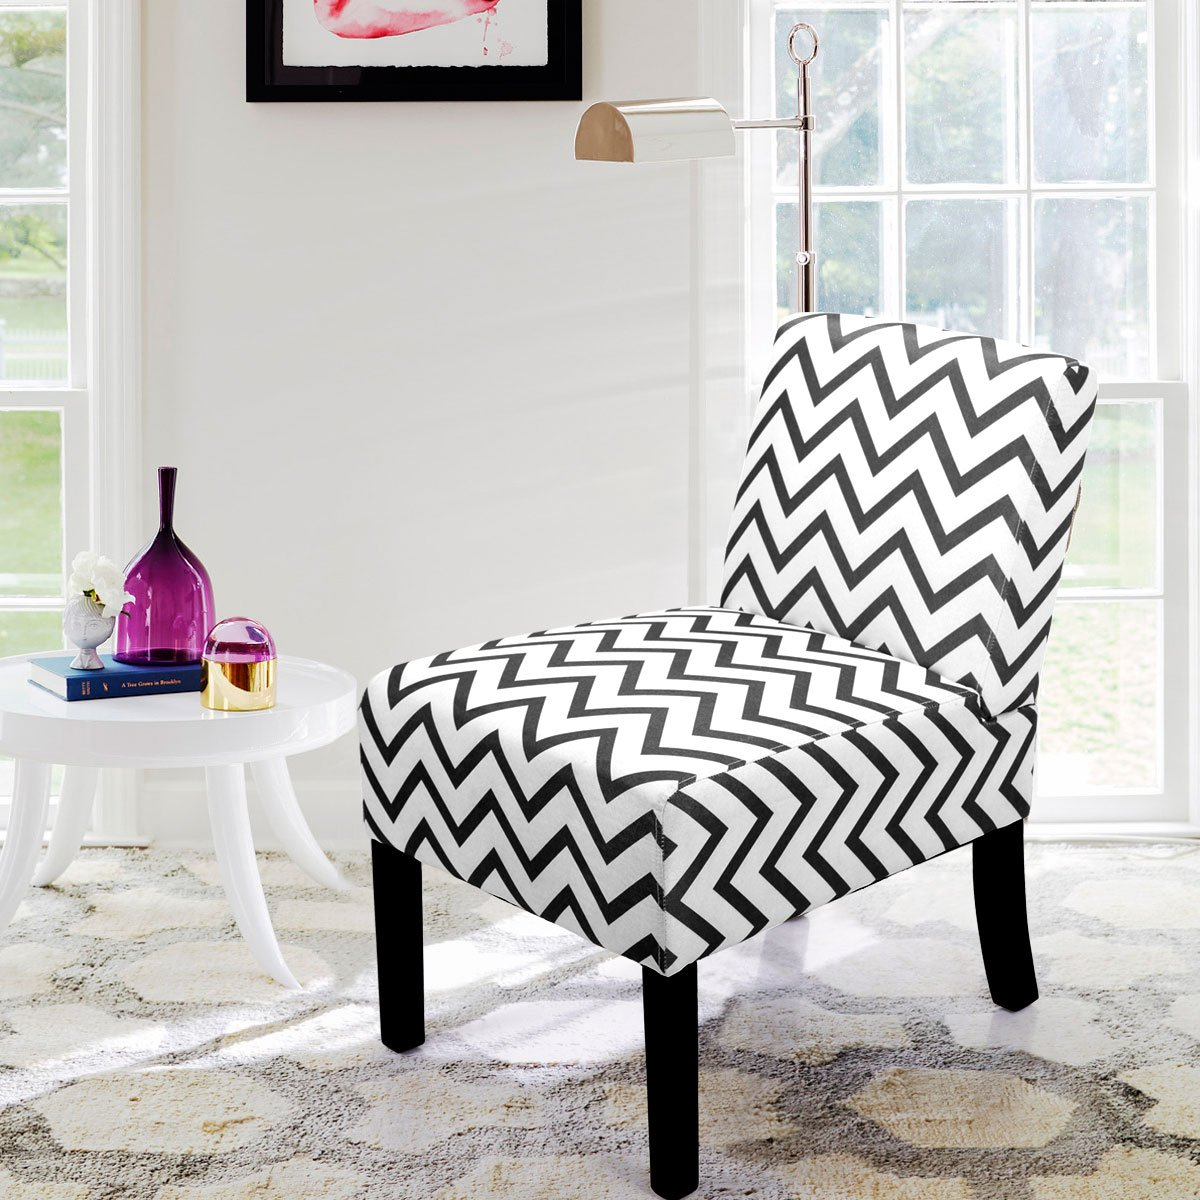 LAZYMOON Leisure Armless Chair Modern Contemporary Upholstered Single Couch Seat Accent Chair Living Room Chair Wave Print Gray